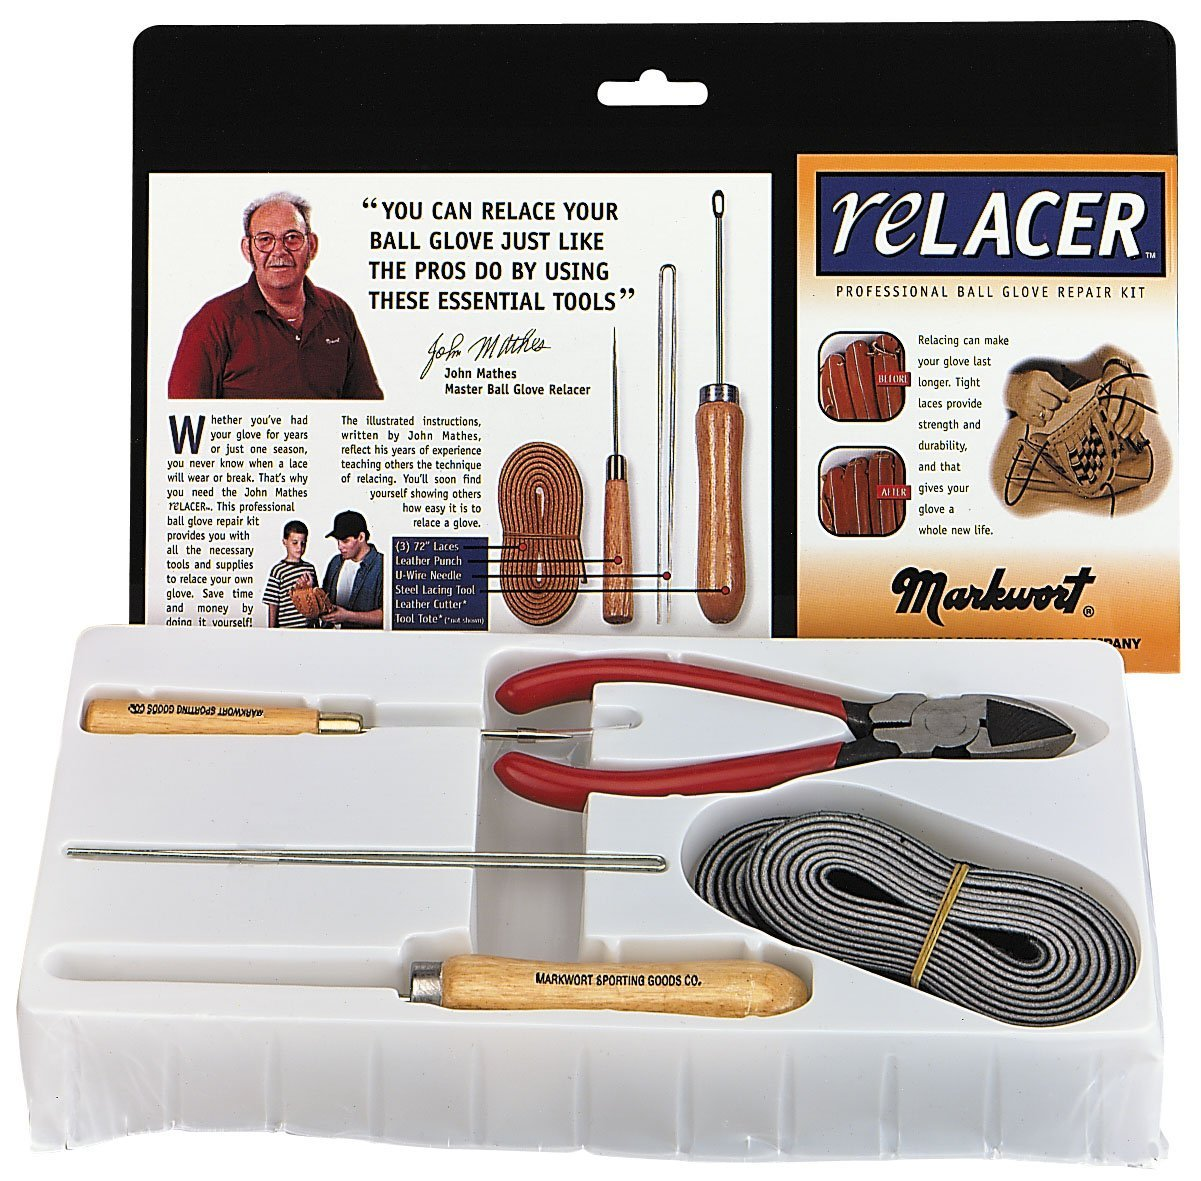 Deluxe Pro Relacer Kit, Tan, Kit contains all the tools a...